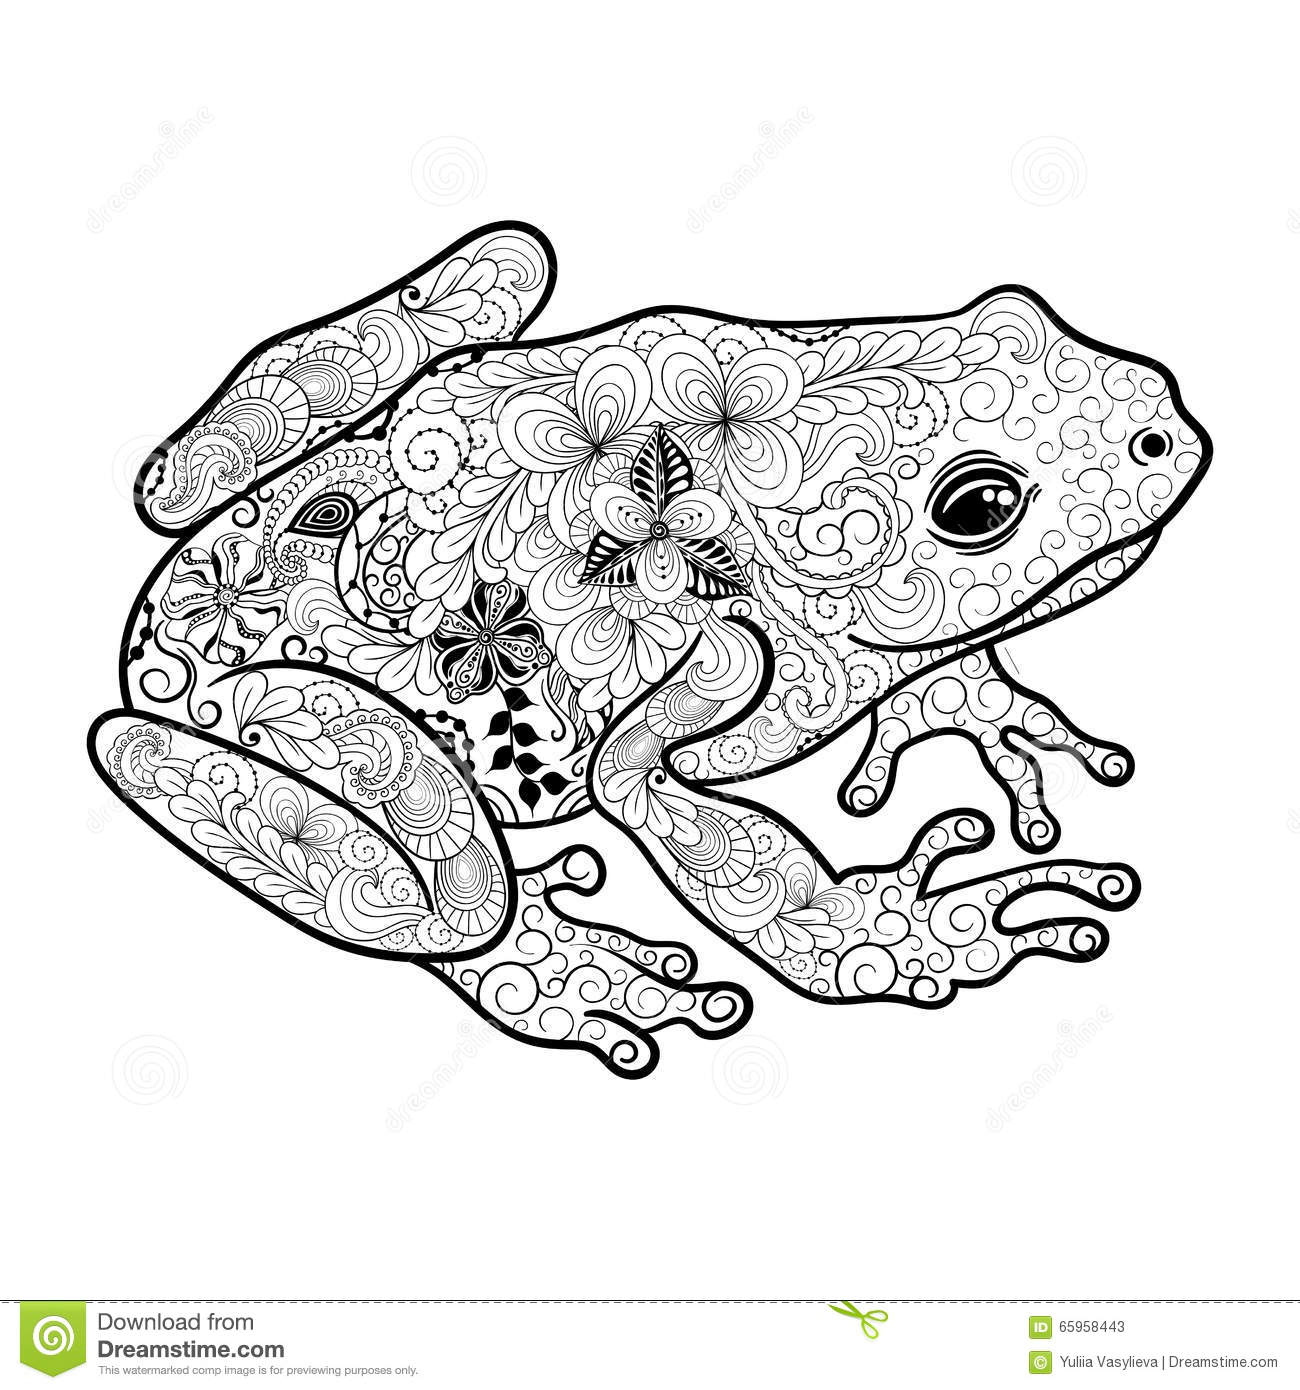 Frog Doodle Stock Vector Illustration Of Decorative